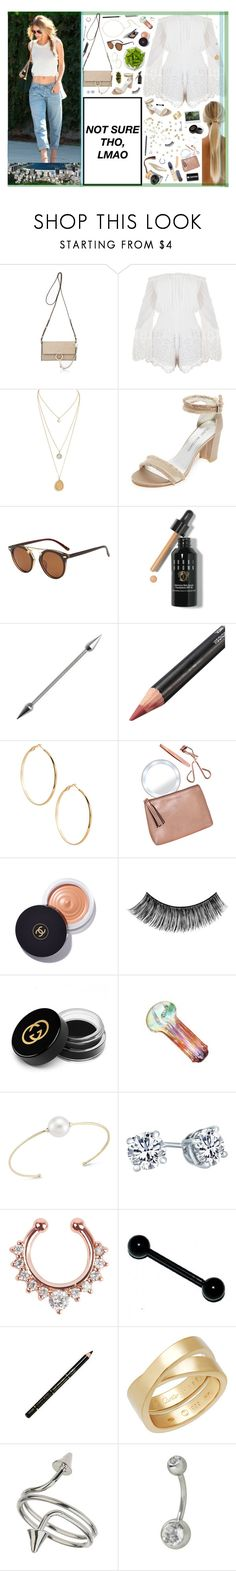 """""""4/25 ♡ You got that healing that I want. Just like they say it in the song, until the dawn, let's Marvin Gaye and get it on."""" by xomissvolker ❤ liked on Polyvore featuring Chloé, Stuart Weitzman, Bobbi Brown Cosmetics, GUESS by Marciano, Tweezerman, Chanel, eylure, Gucci, mizuki and ULTA"""